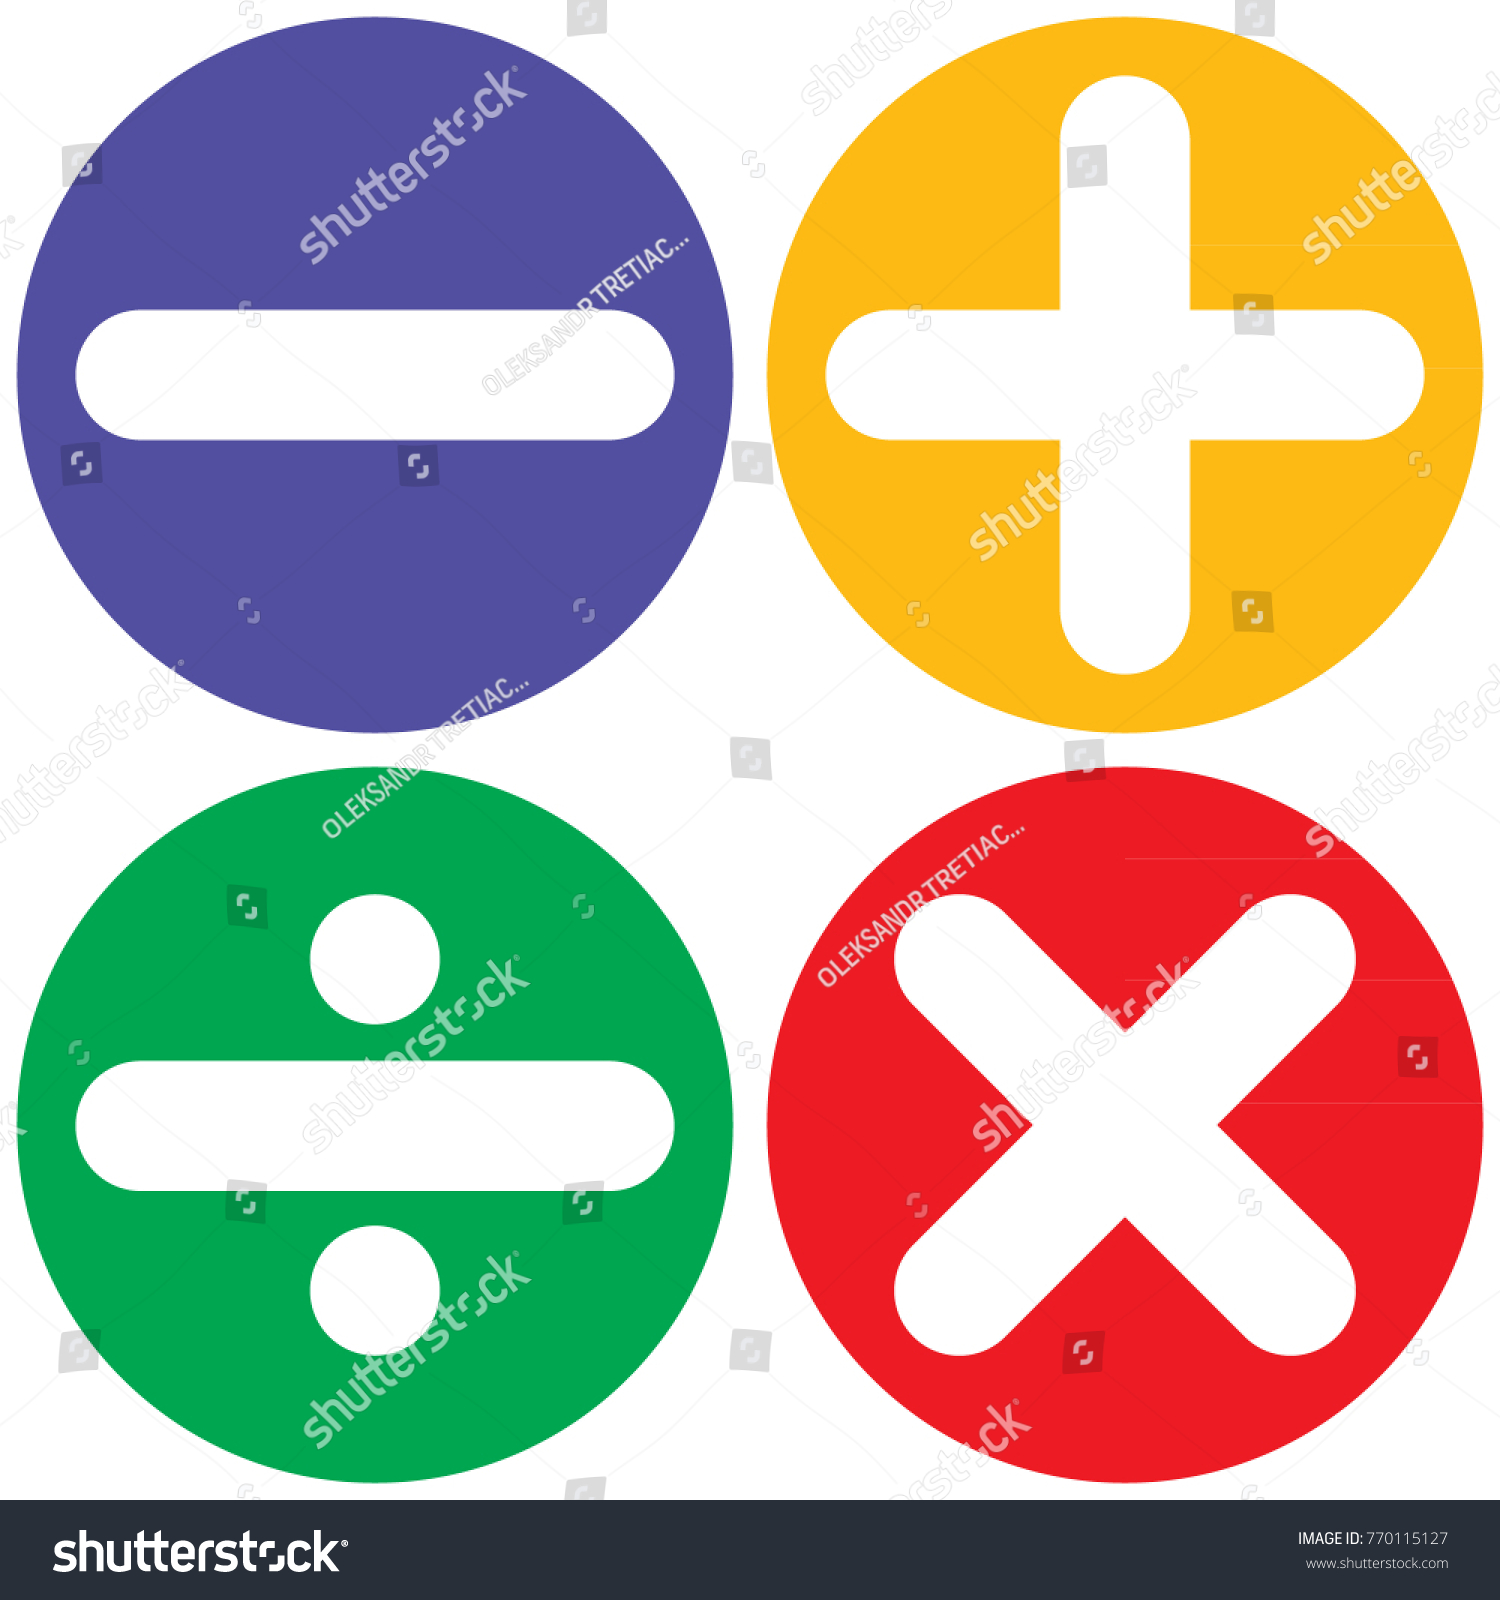 Vector icons mathematical signs stock vector 770115127 shutterstock vector icons with mathematical signs buycottarizona Image collections